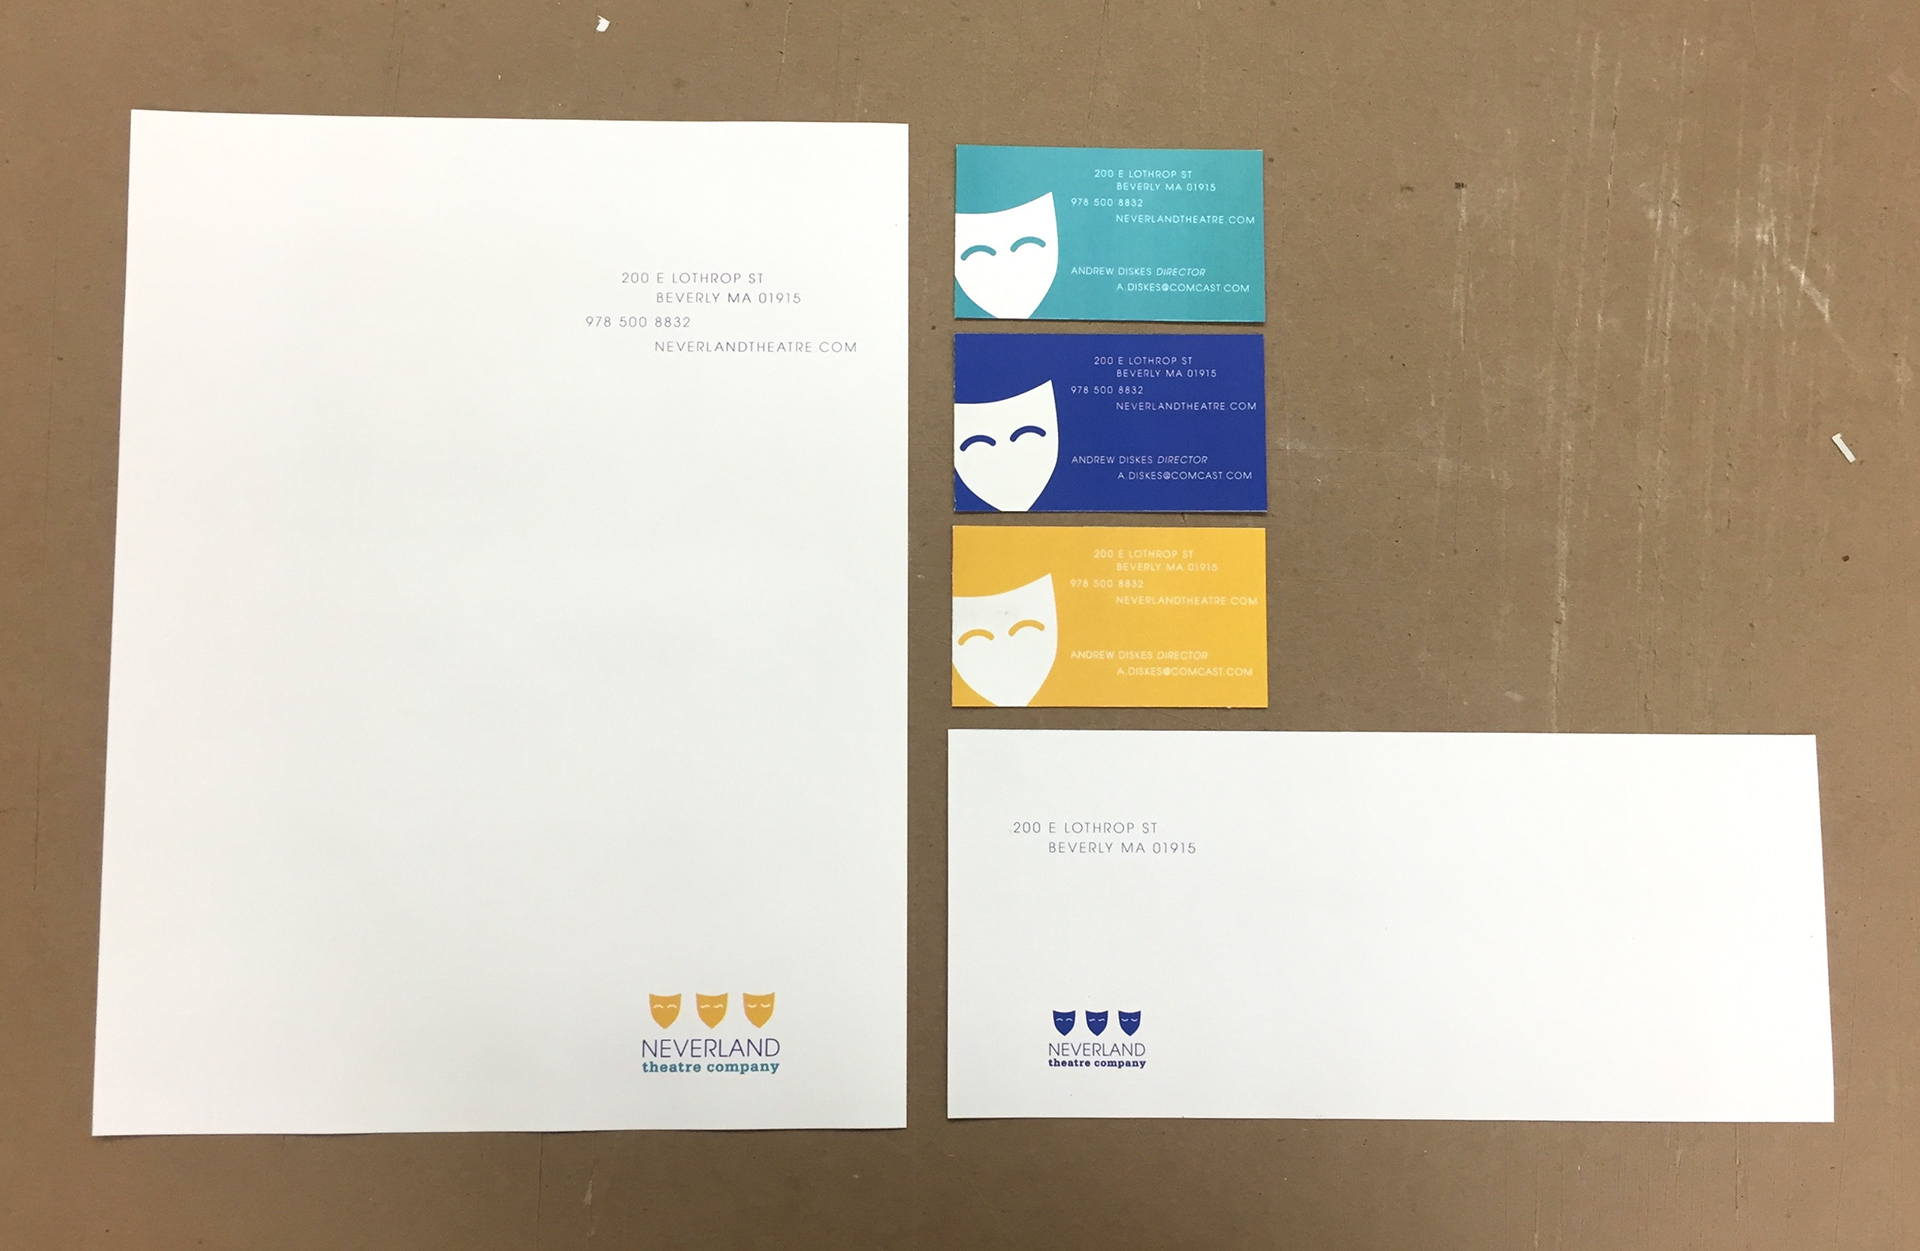 Chase terranova identity project this includes logo ideas business cards letterhead playbills tickets posters and a graphic standards manual 2016 reheart Images